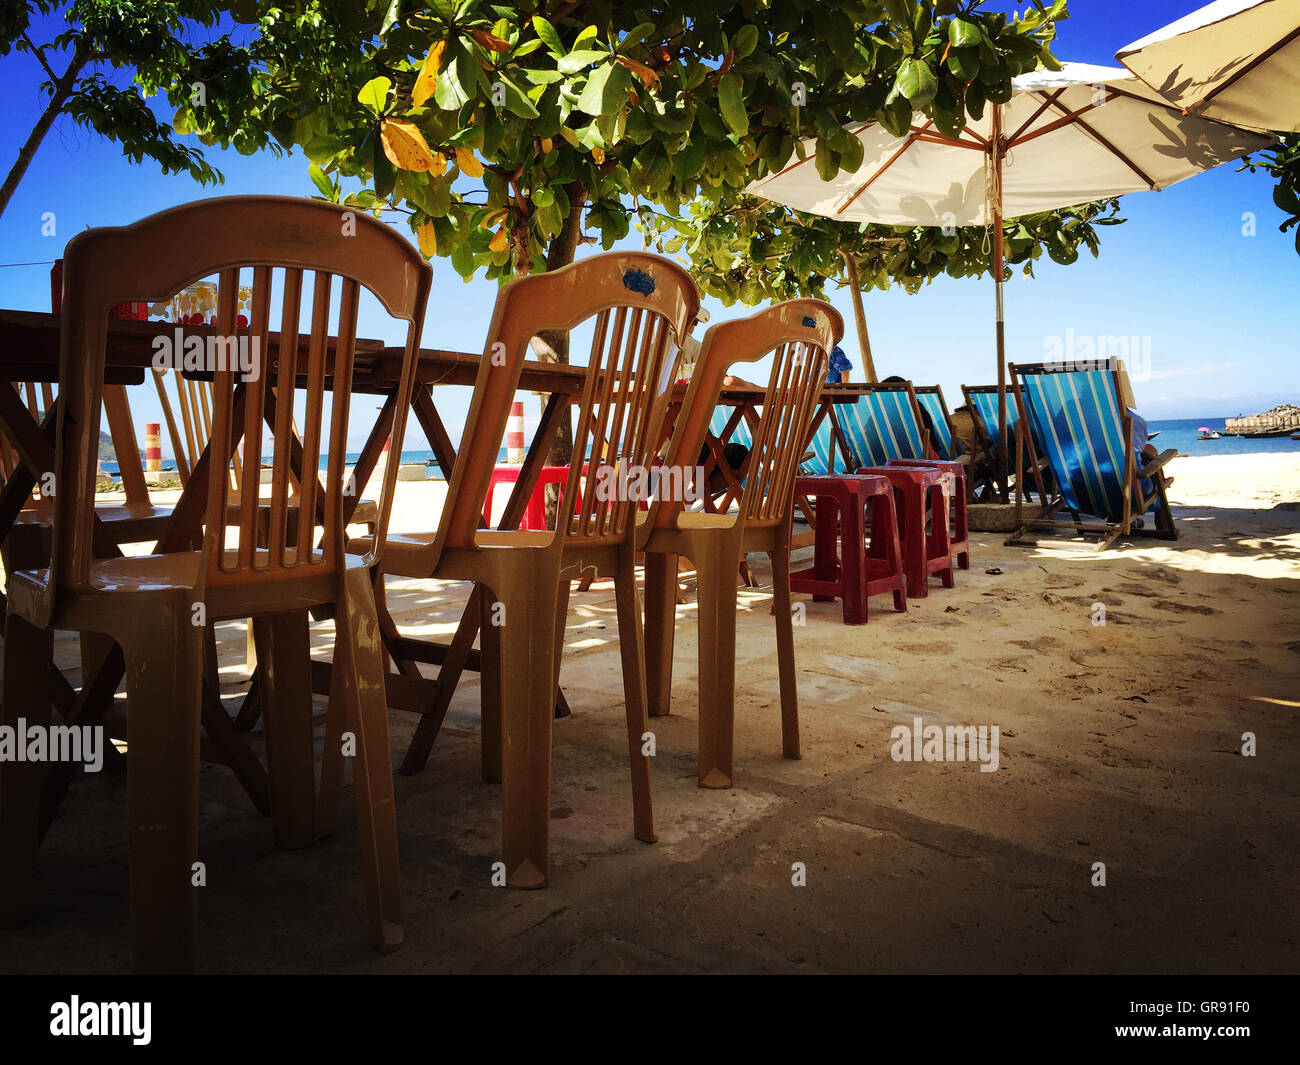 Tables And Chairs Besides Parasols On Beach - Stock Image